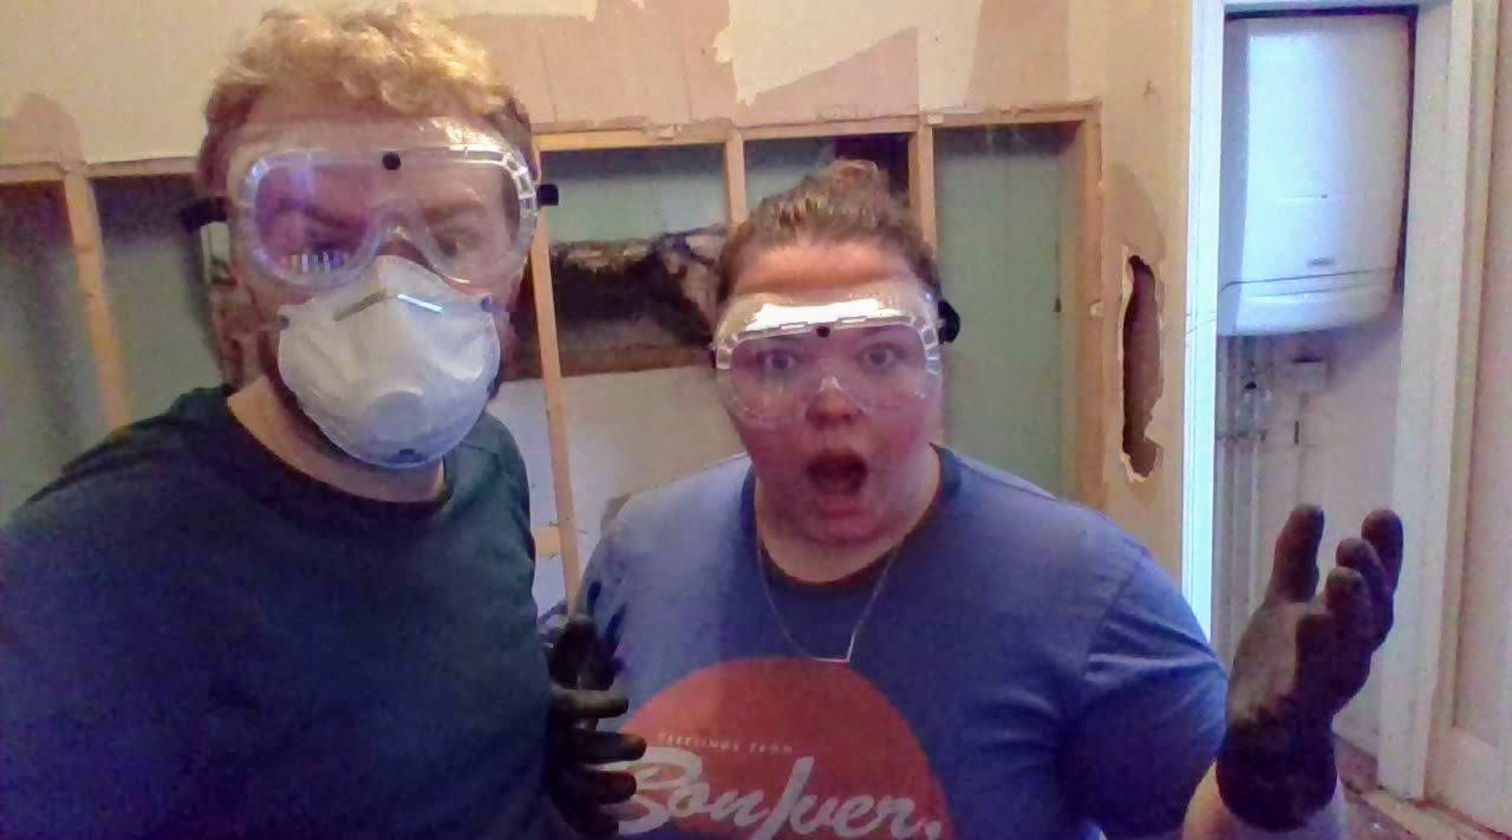 Me and Alex wearing masks while demolishing a false wall